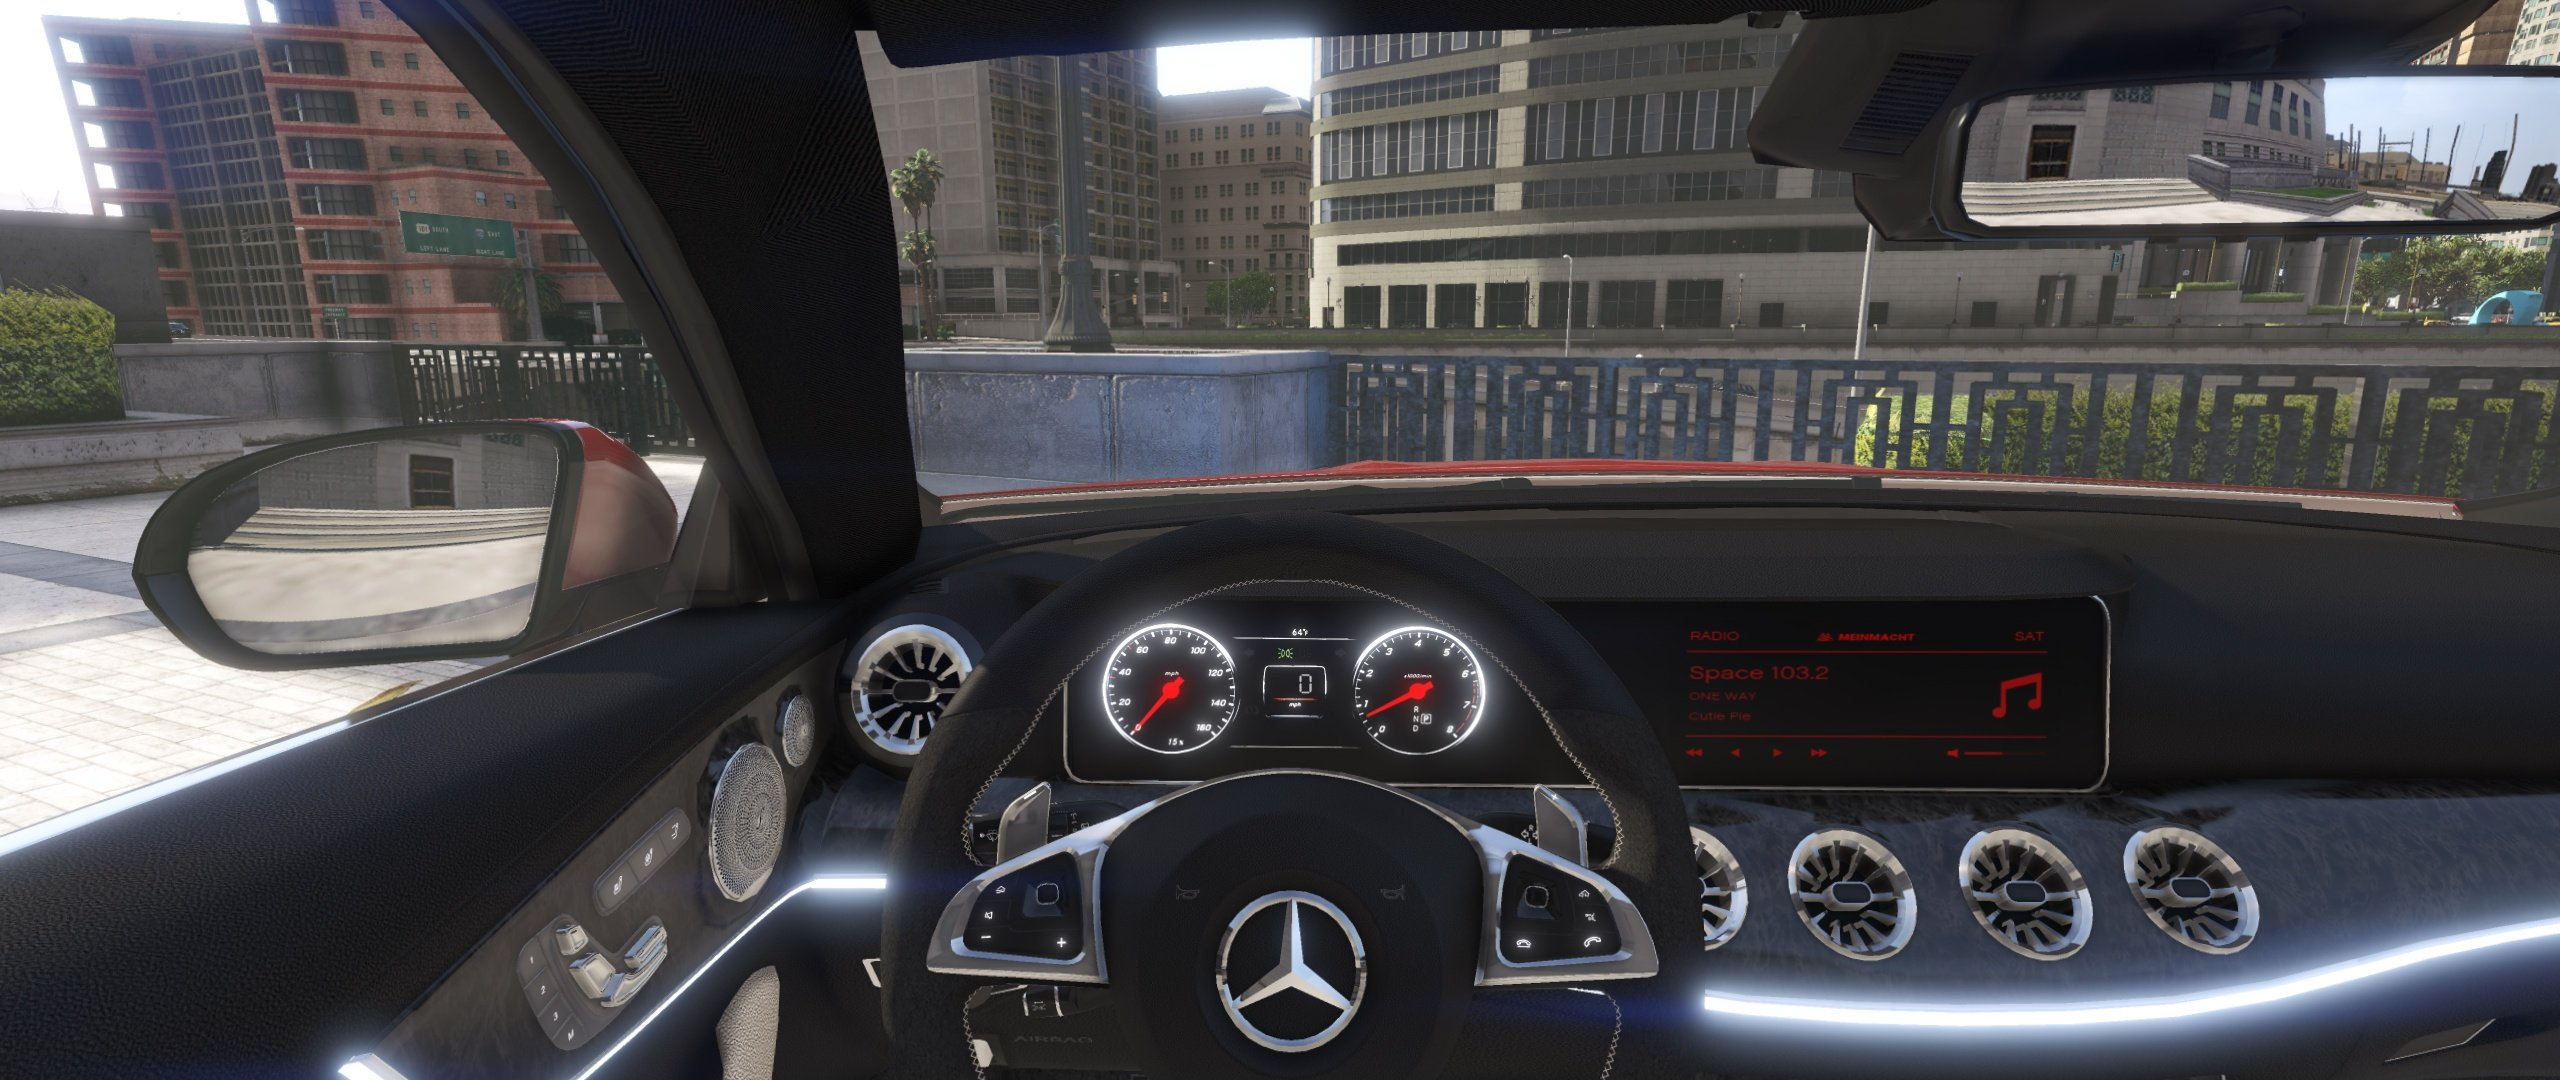 2019 Mercedes-Benz E400 4matic [Add-On | Replace] 1.4